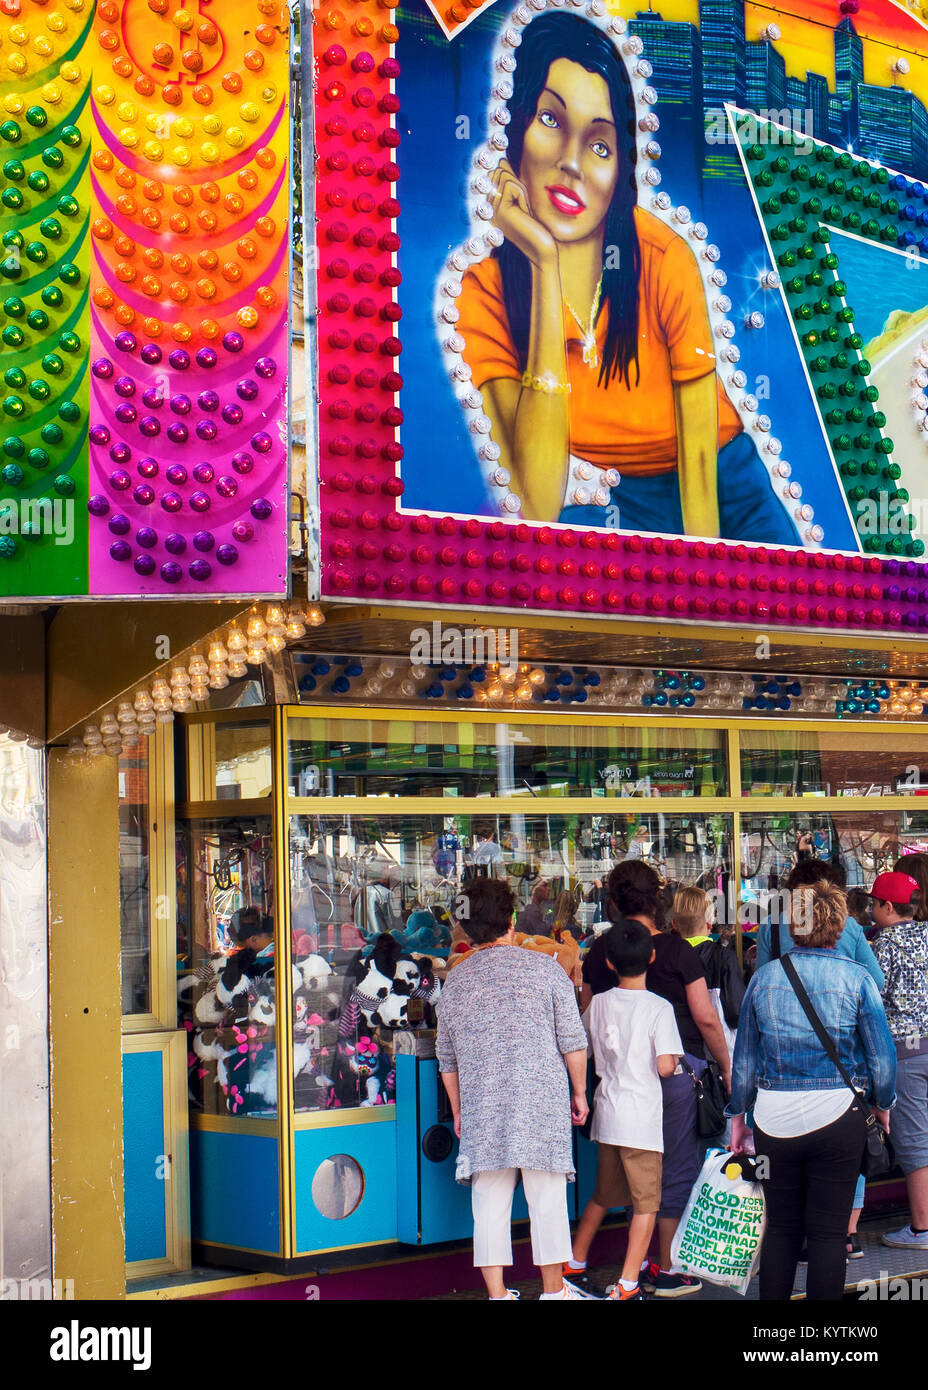 amusement arcade Malmo Sweden during summer music festival - Stock Image